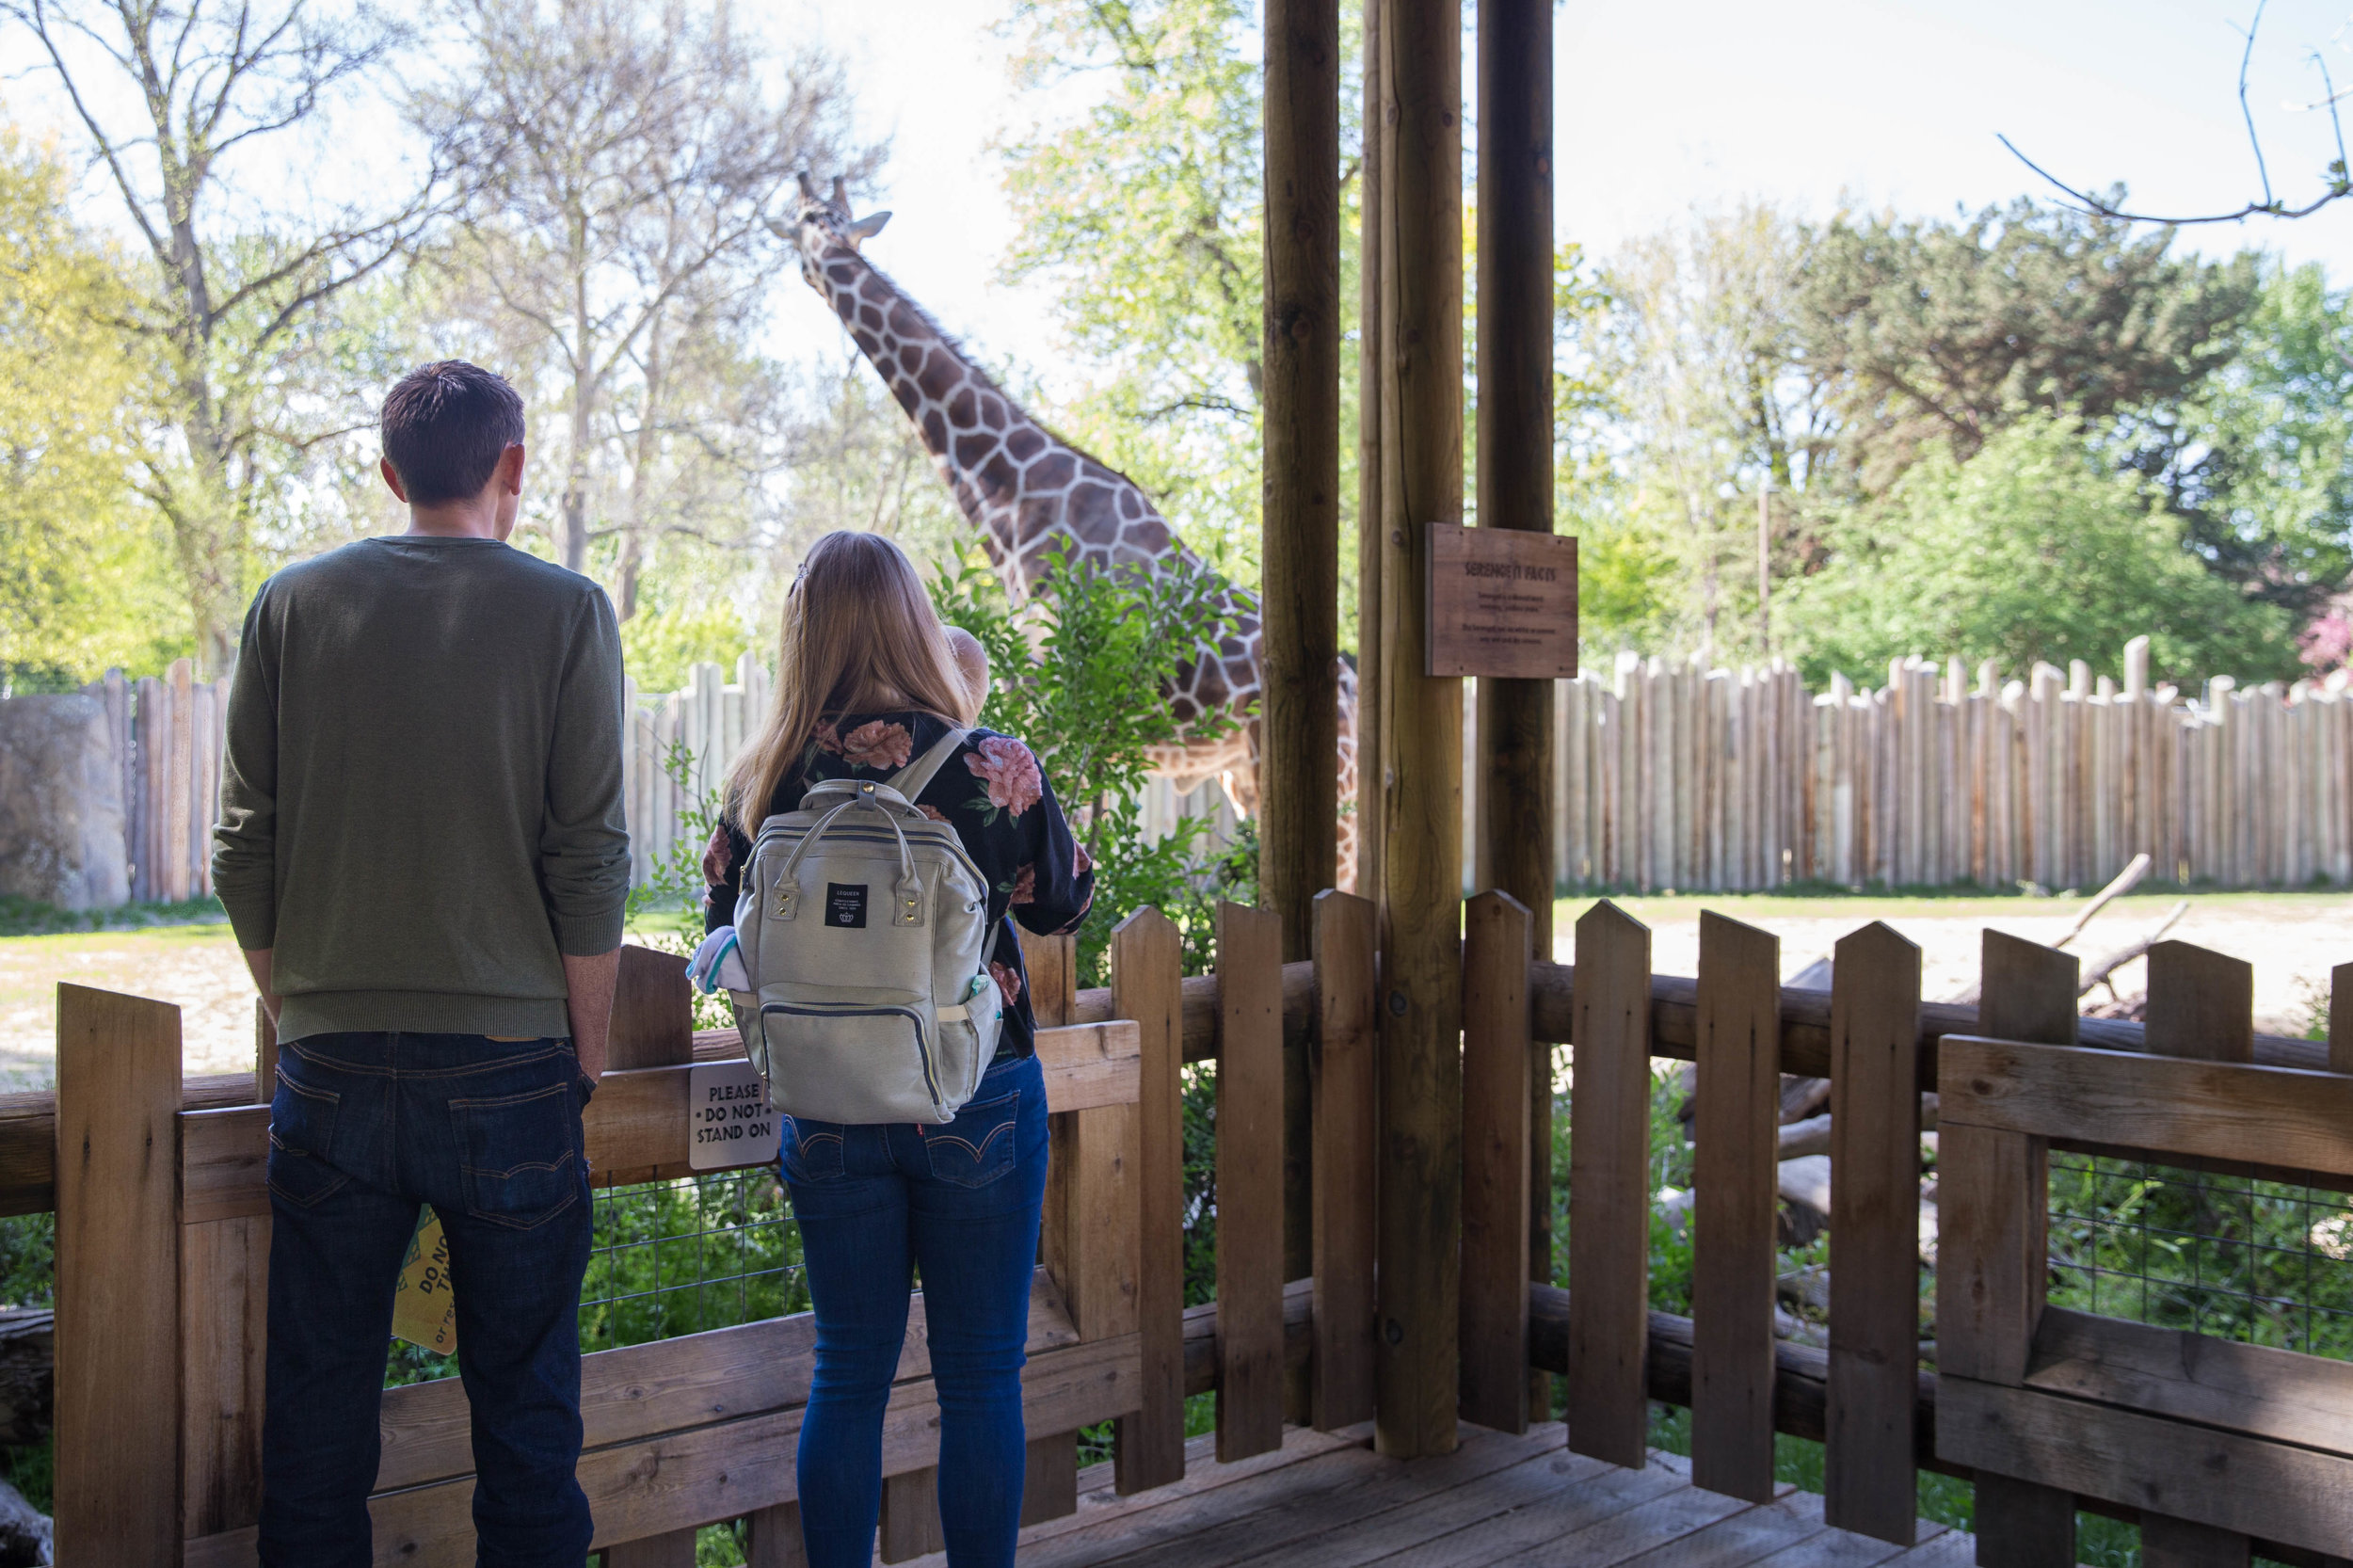 Mom and dad holding their one year old boy as they watch the giraffe walk on by at Zoo Boise.